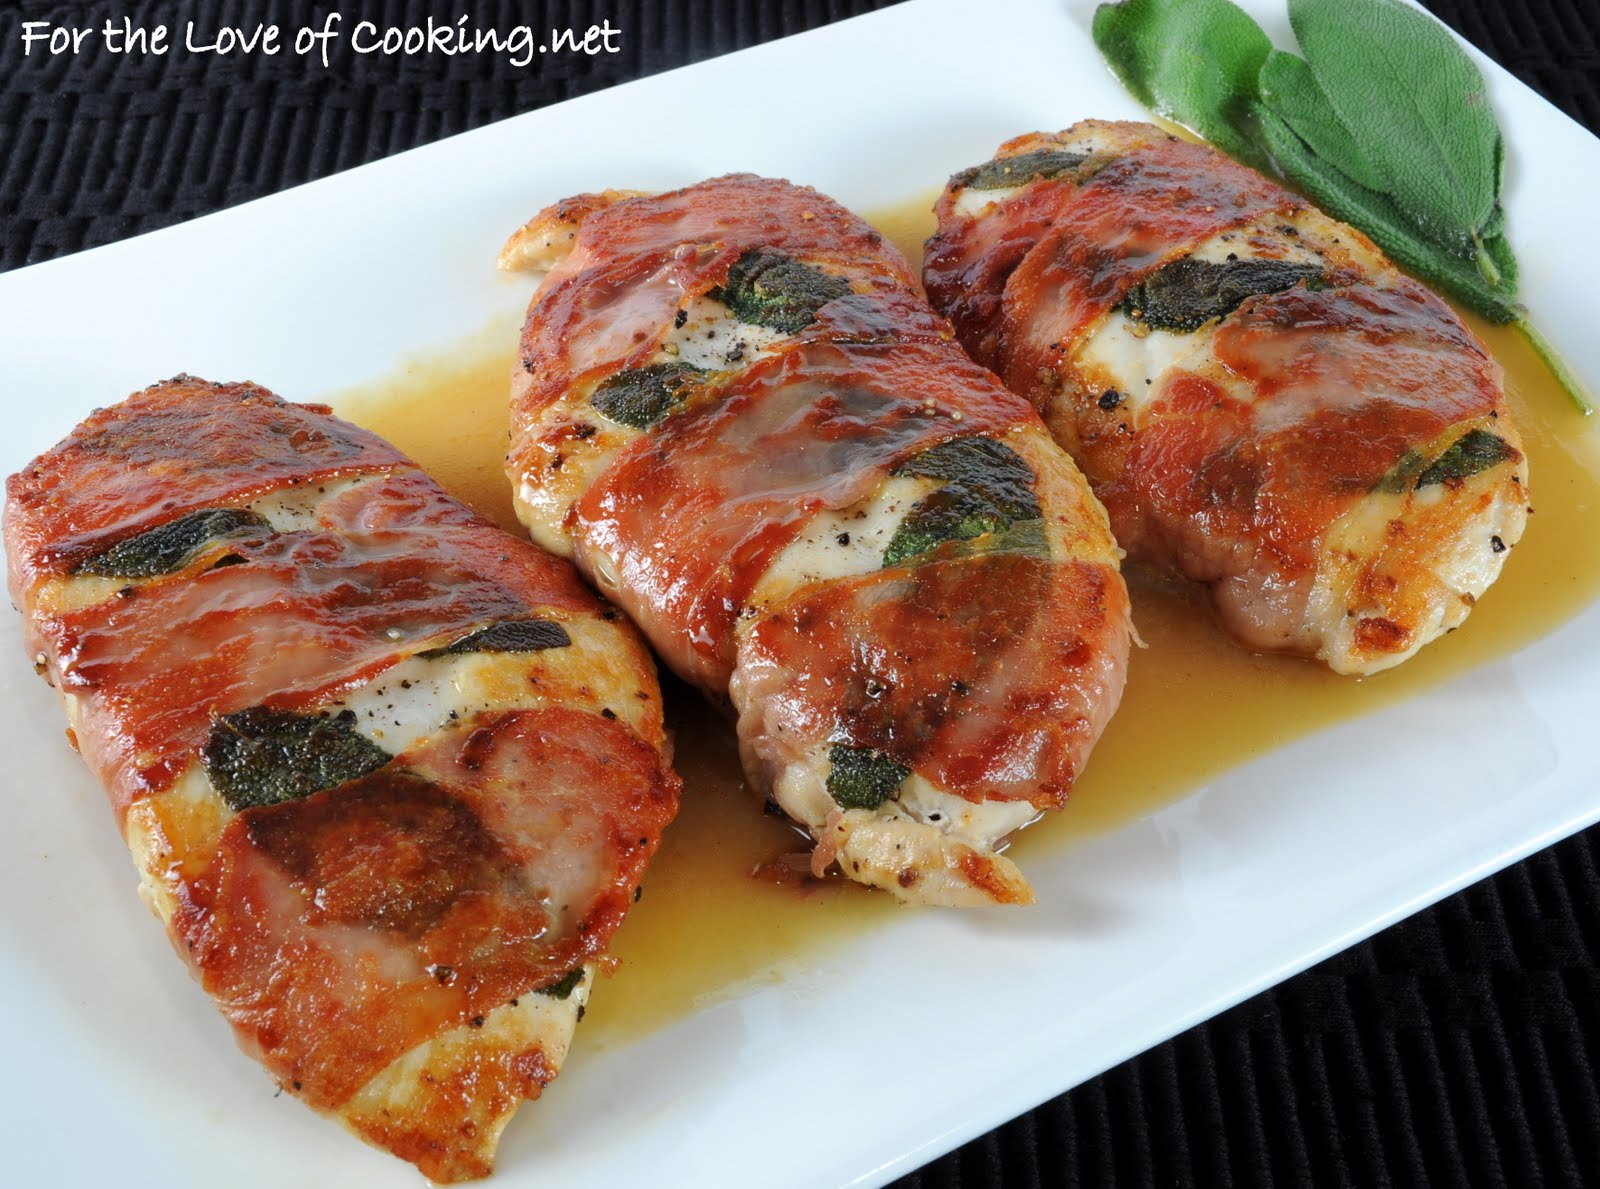 lemony chicken saltimbocca for the love of cooking